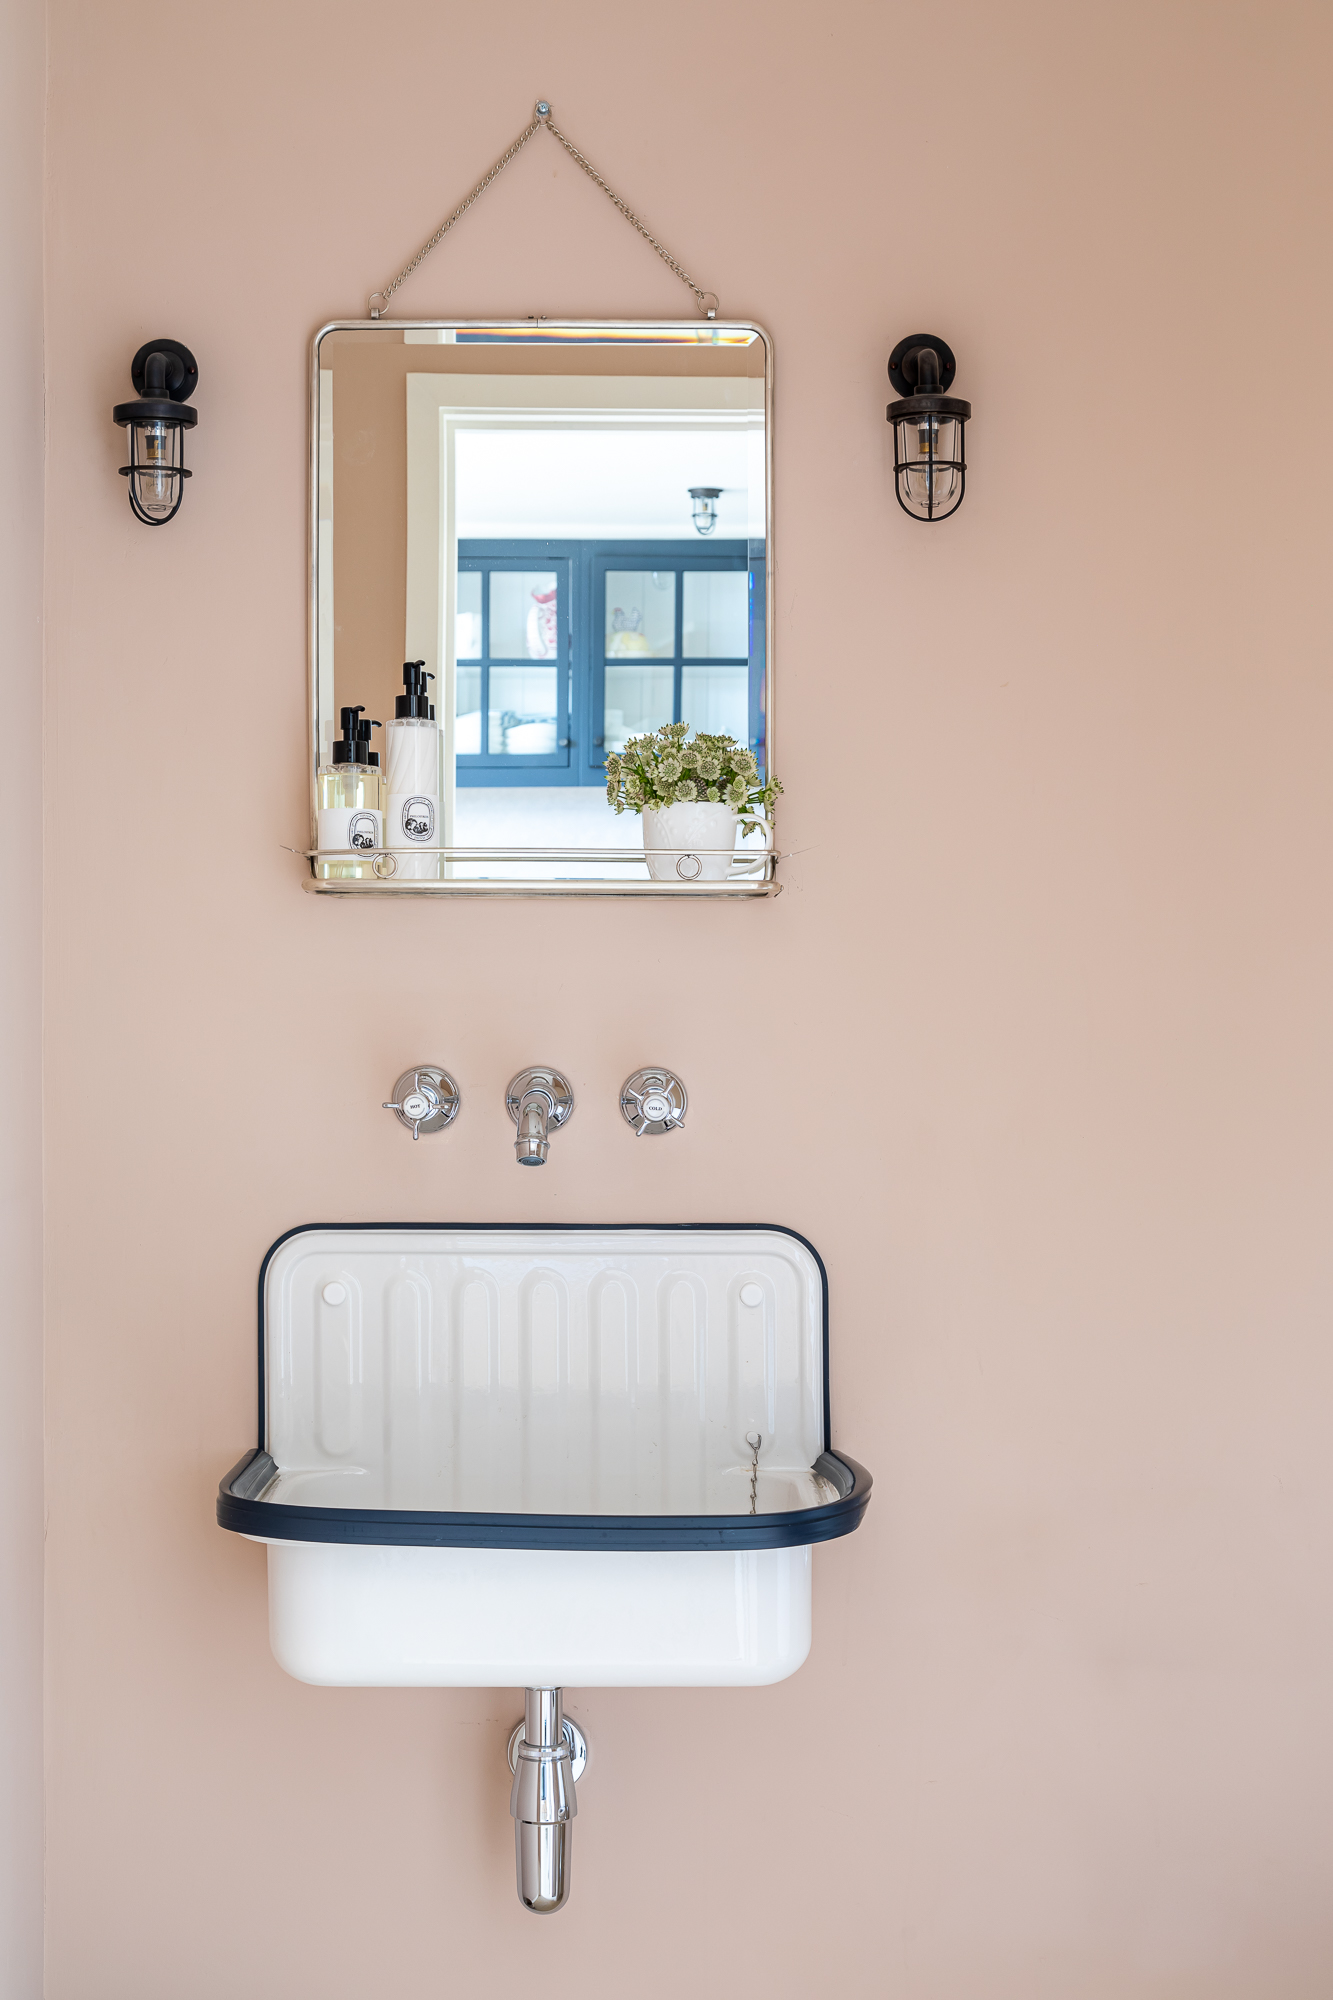 jonathan bond, interior photographer, wall hung basin & mirror, marnhull, dorset